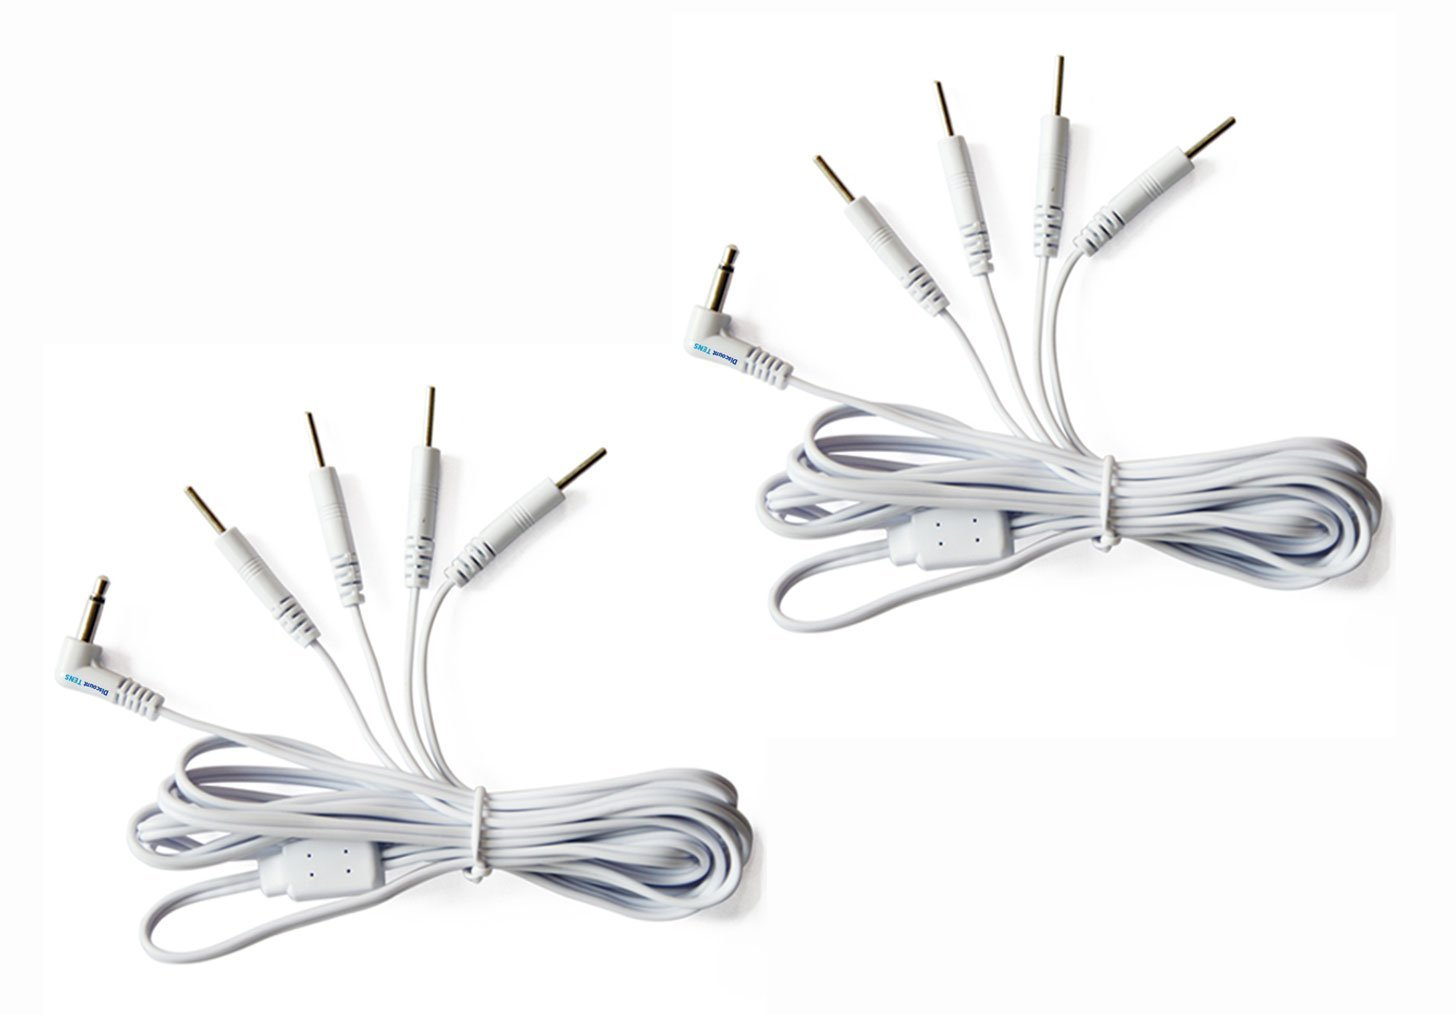 Amazon.com: Tens Lead Wires - 3.5mm plug to Two 2mm Pin Connectors ...